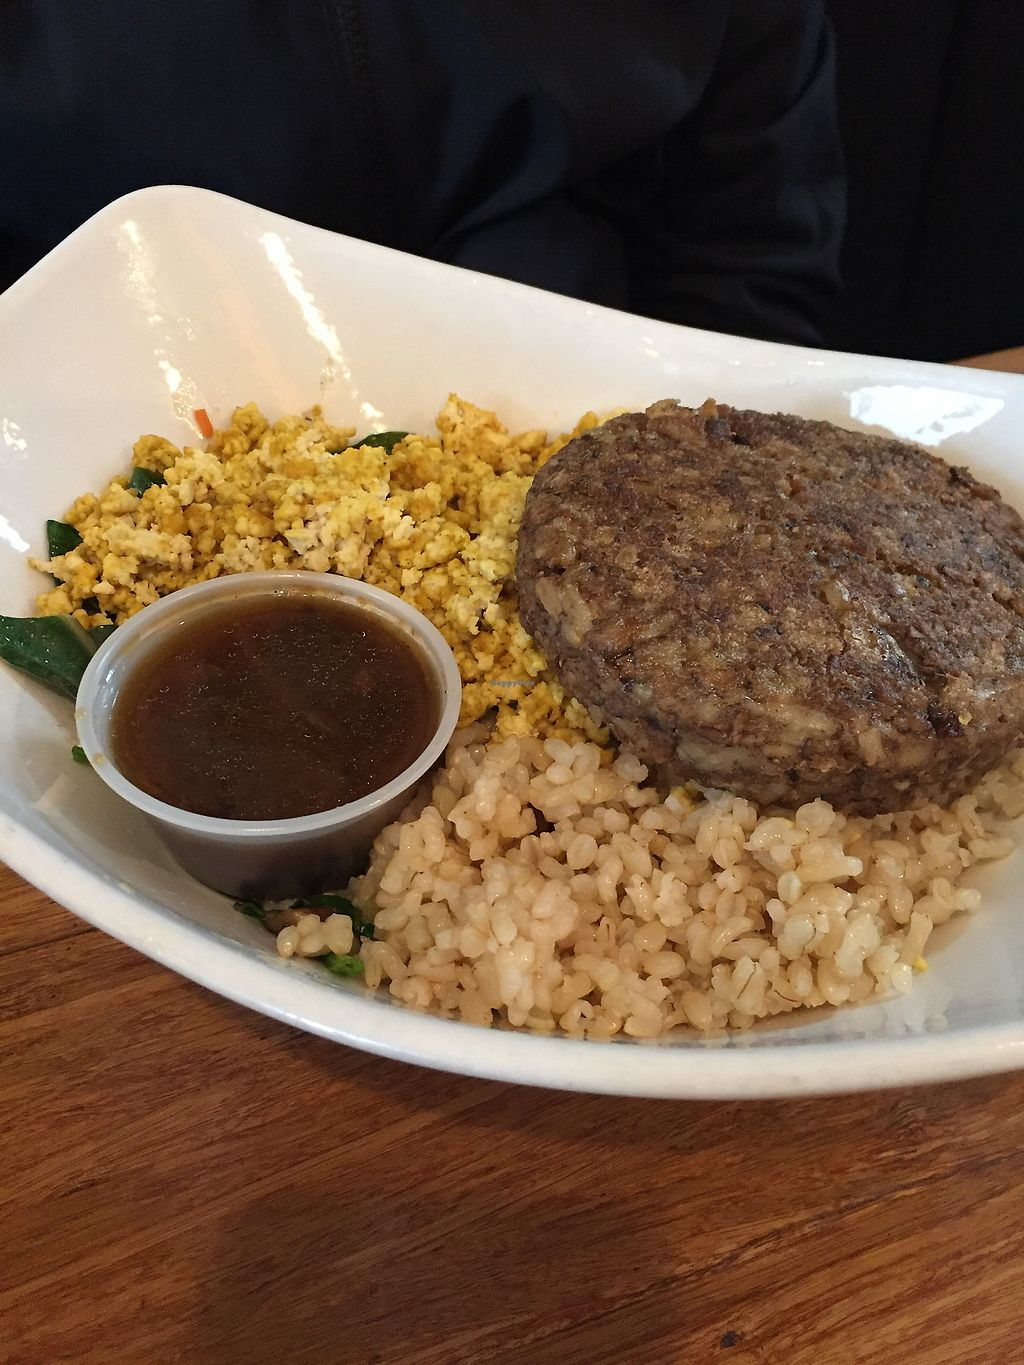 "Photo of Palm Greens Cafe  by <a href=""/members/profile/heathenvegan"">heathenvegan</a> <br/>Vegan Loco Moco <br/> March 10, 2018  - <a href='/contact/abuse/image/15008/368985'>Report</a>"